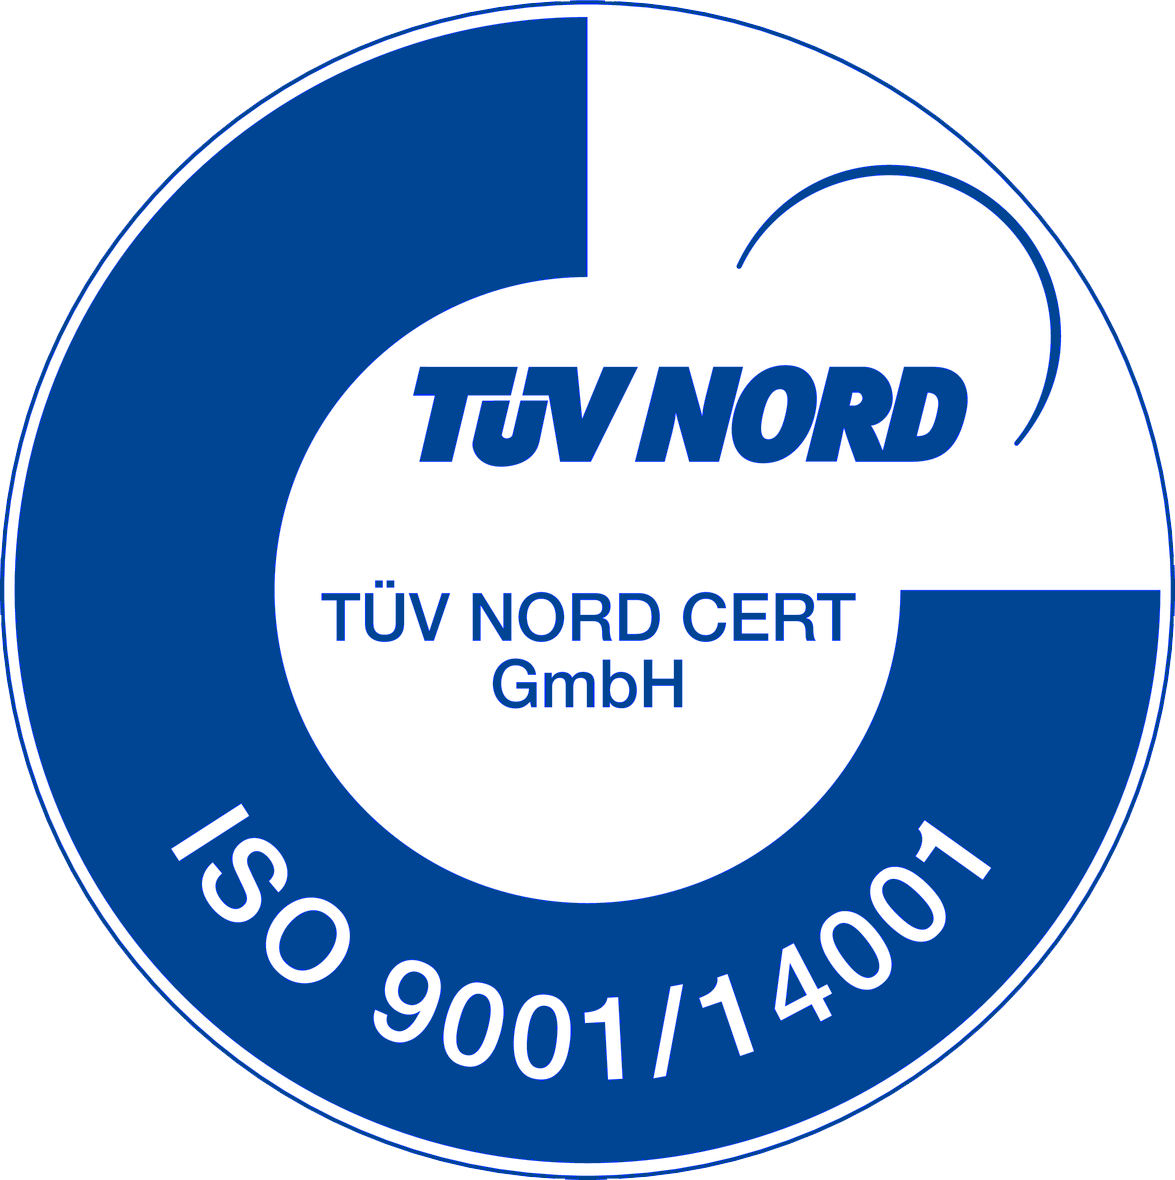 Cubro ISO certification